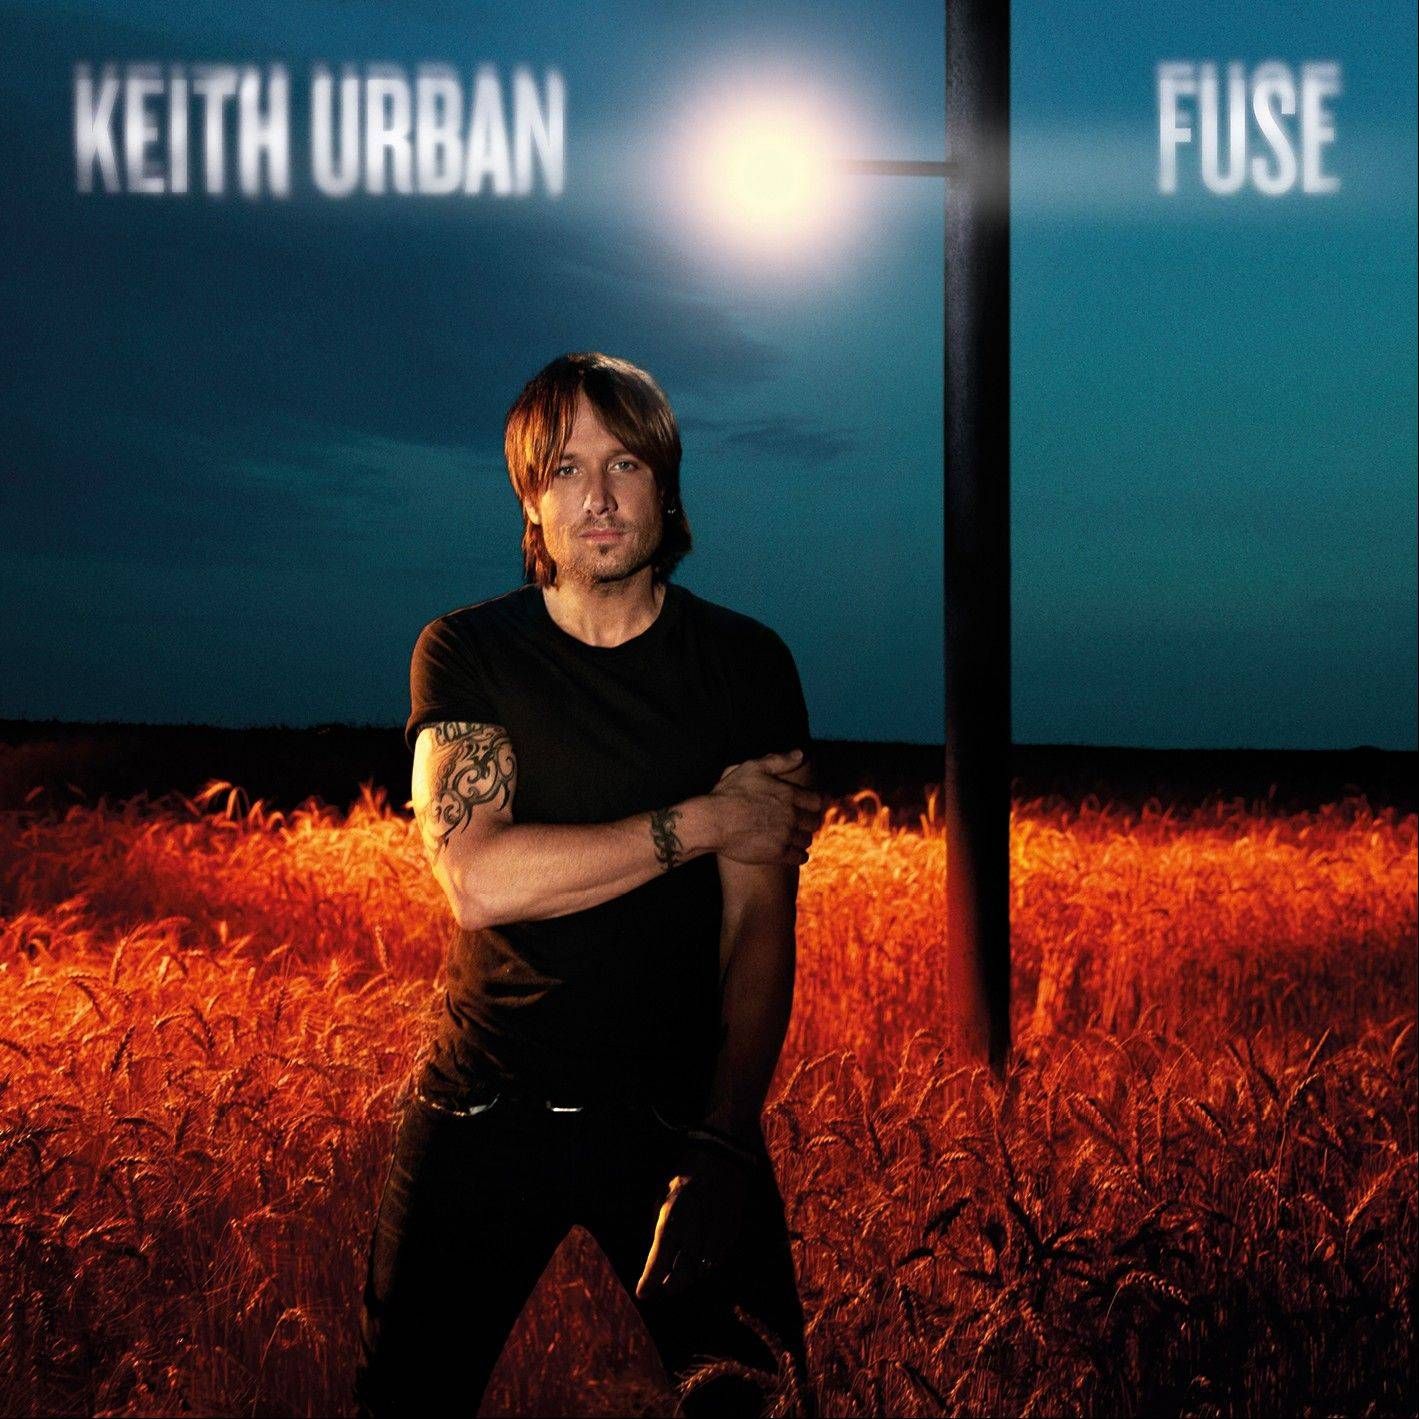 """Fuse,"" the latest release by Keith Urban"